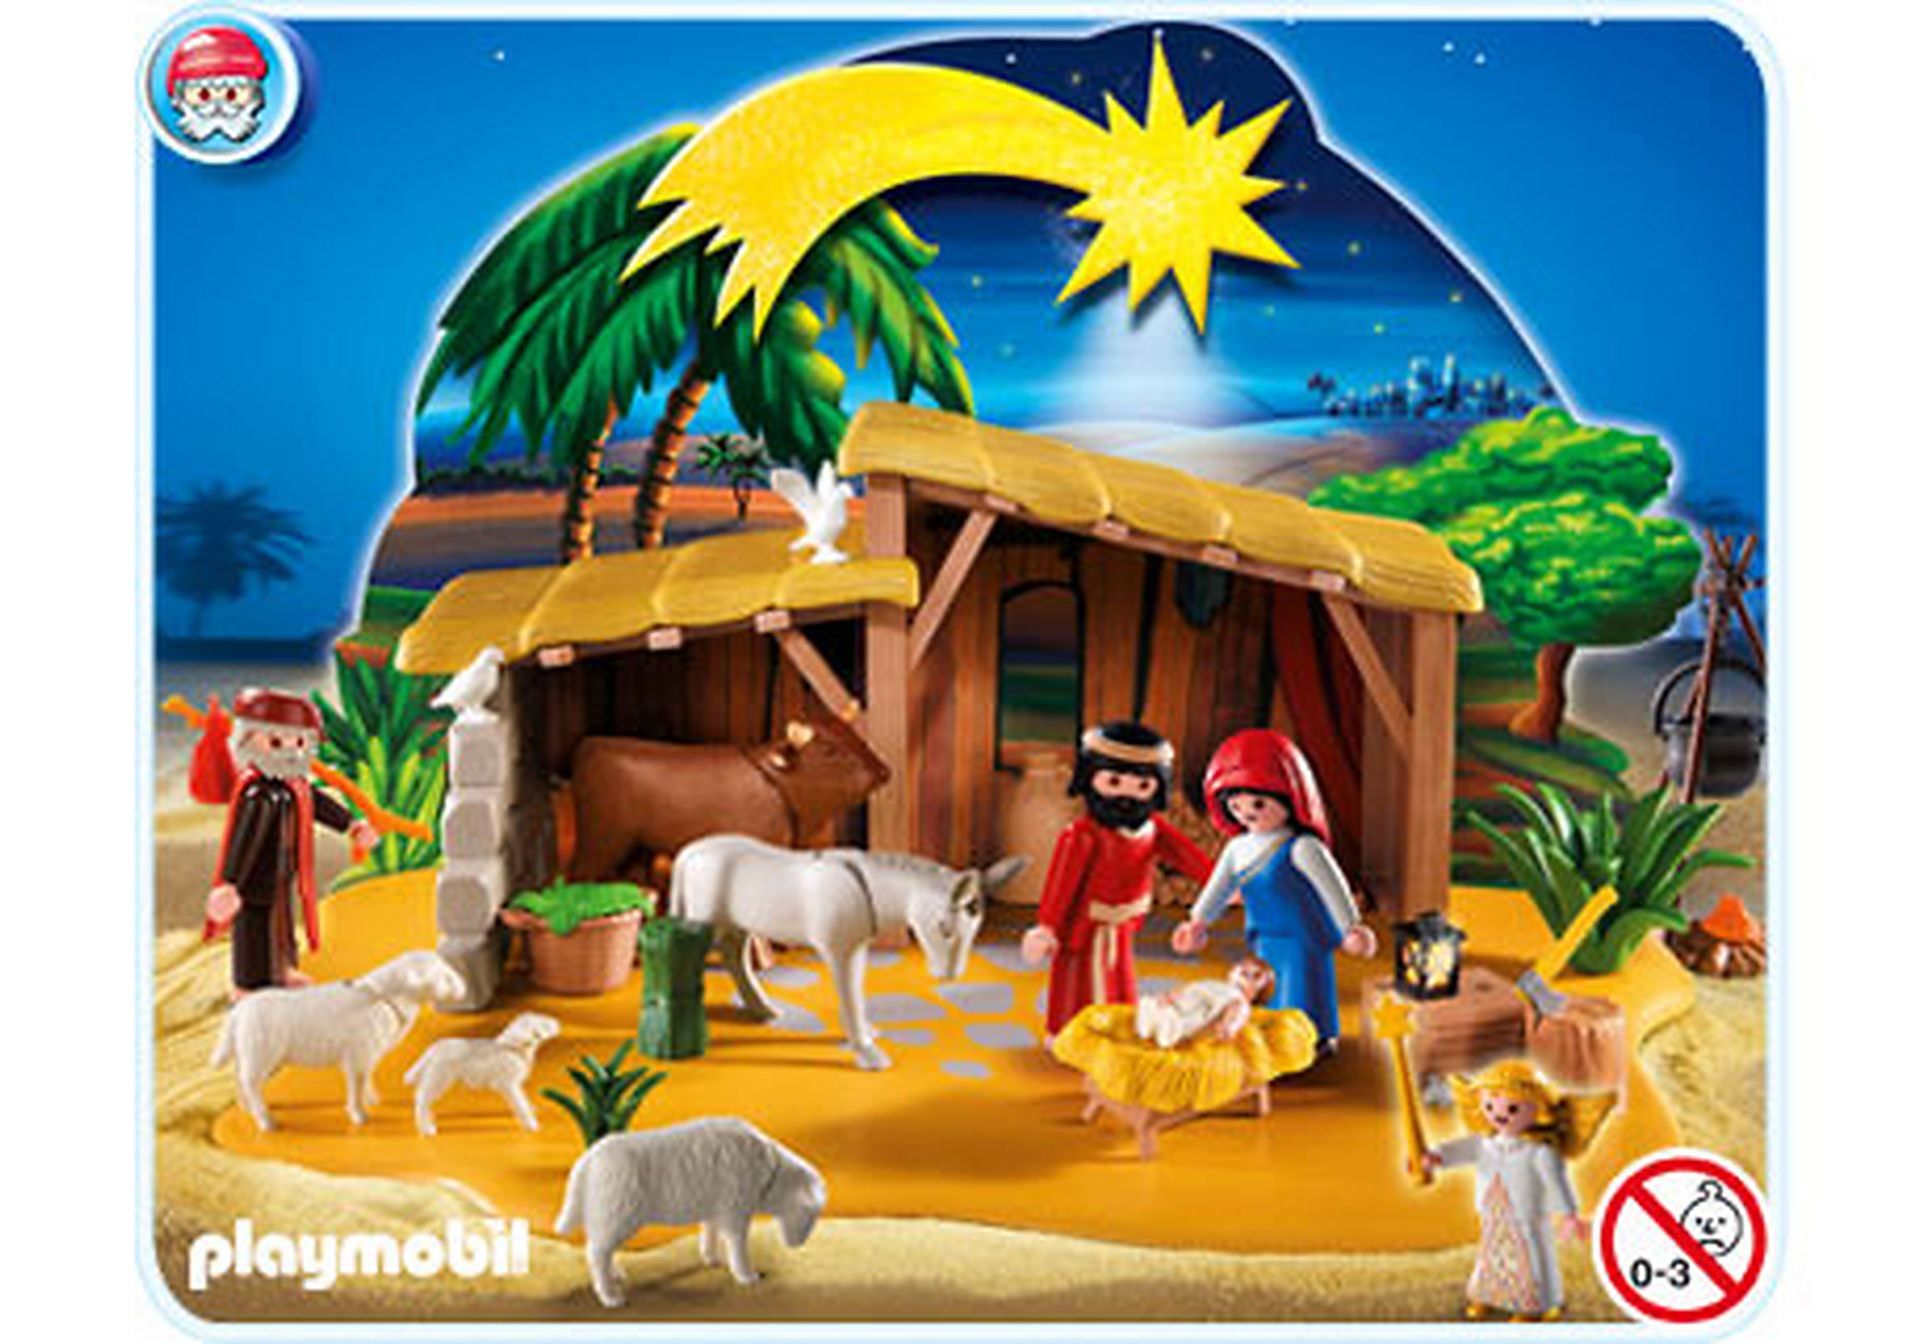 http://media.playmobil.com/i/playmobil/4884-A_product_detail/Große Krippe mit Stall